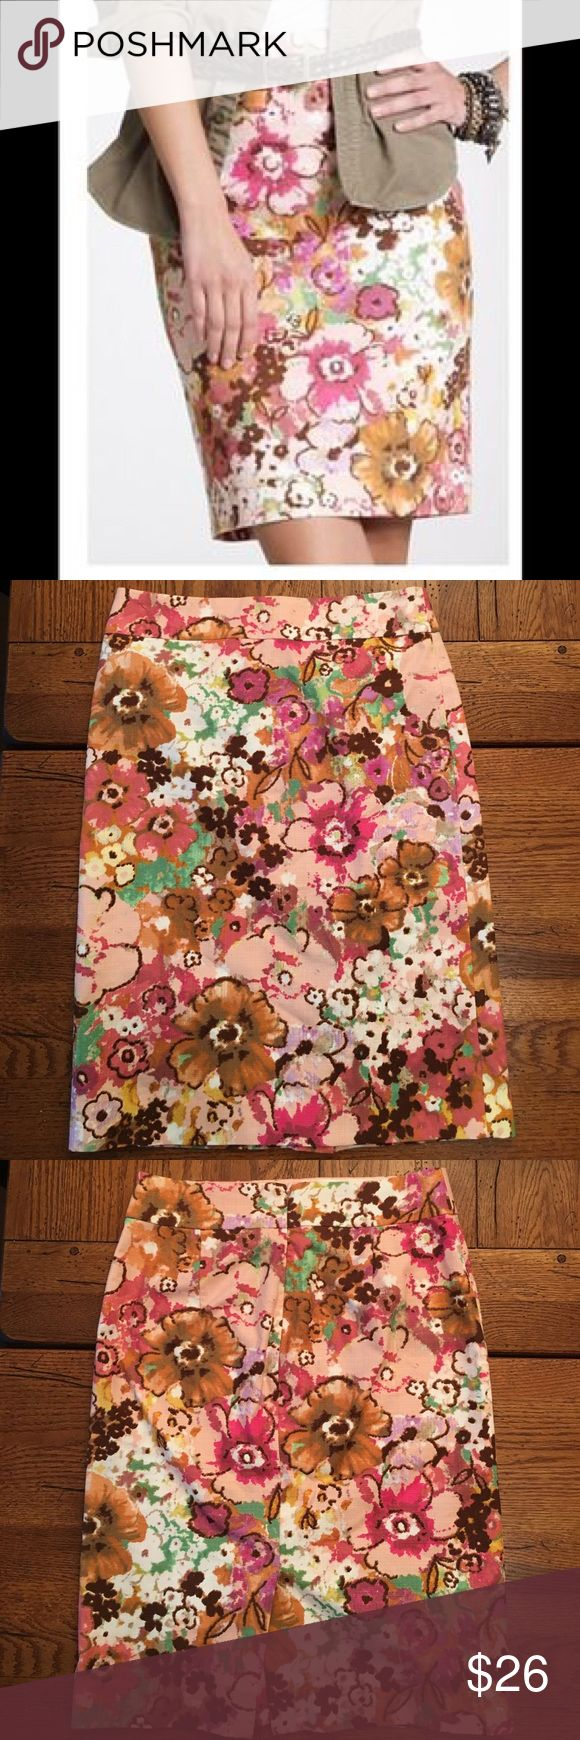 J. Crew Watercolor Floral Pastiche Pencil Skirt Gorgeous Floral Print.   You will look like a work of art!  Could easily be dressed up or down.  •Size 2 • 98% cotton, 2% spandex • Very good used condition.  Only flaw is a small pull near the zipper that is not noticeable when worn.  Picture of flaw is in photo above. • Offers are welcome  J. Crew Skirts Pencil